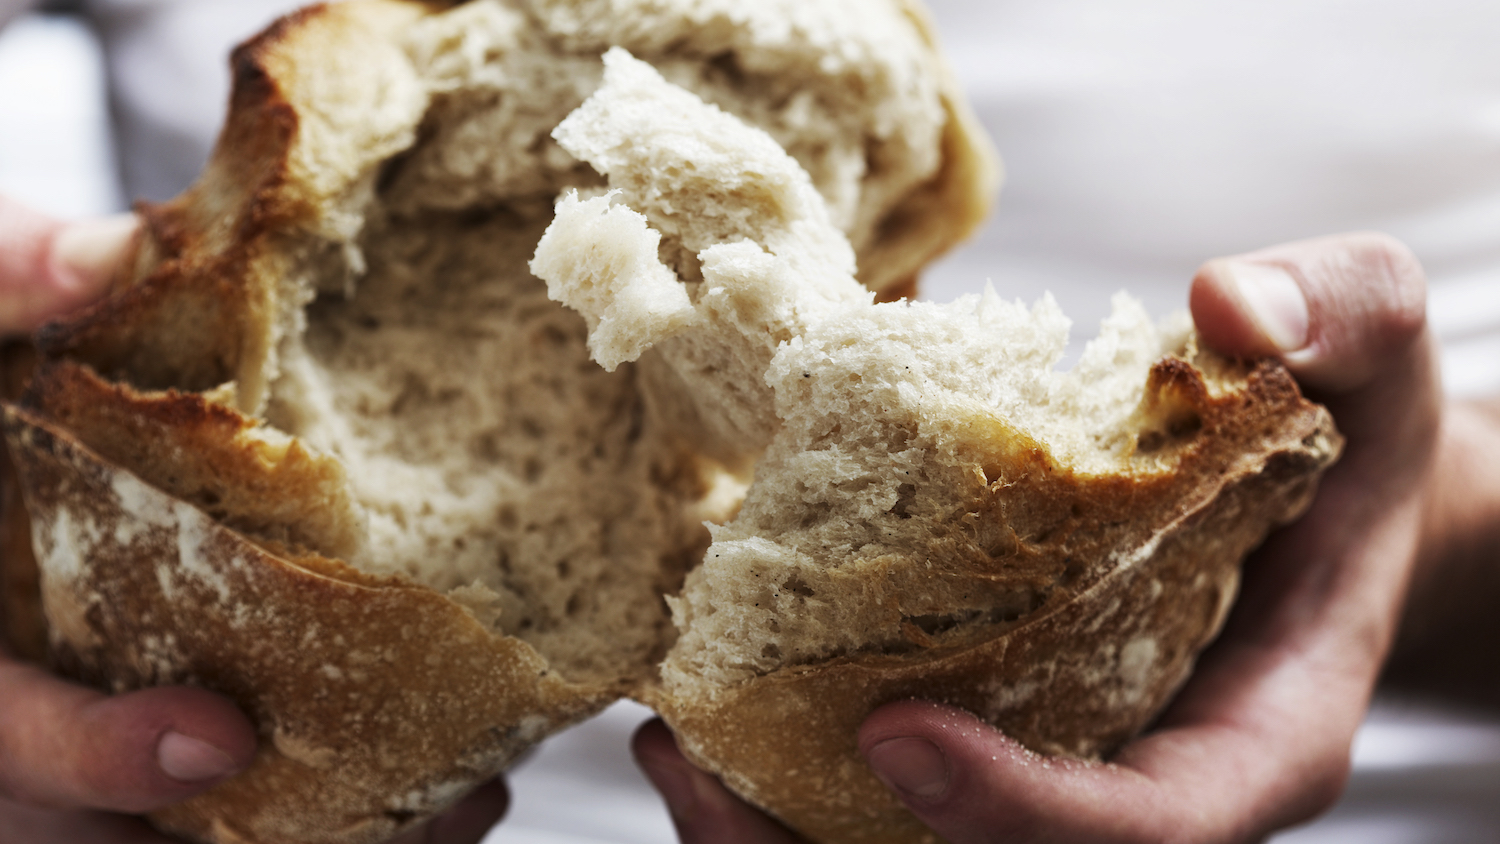 This Is the Only Type of Bread You Should Be Eating, According to a Cardiologist